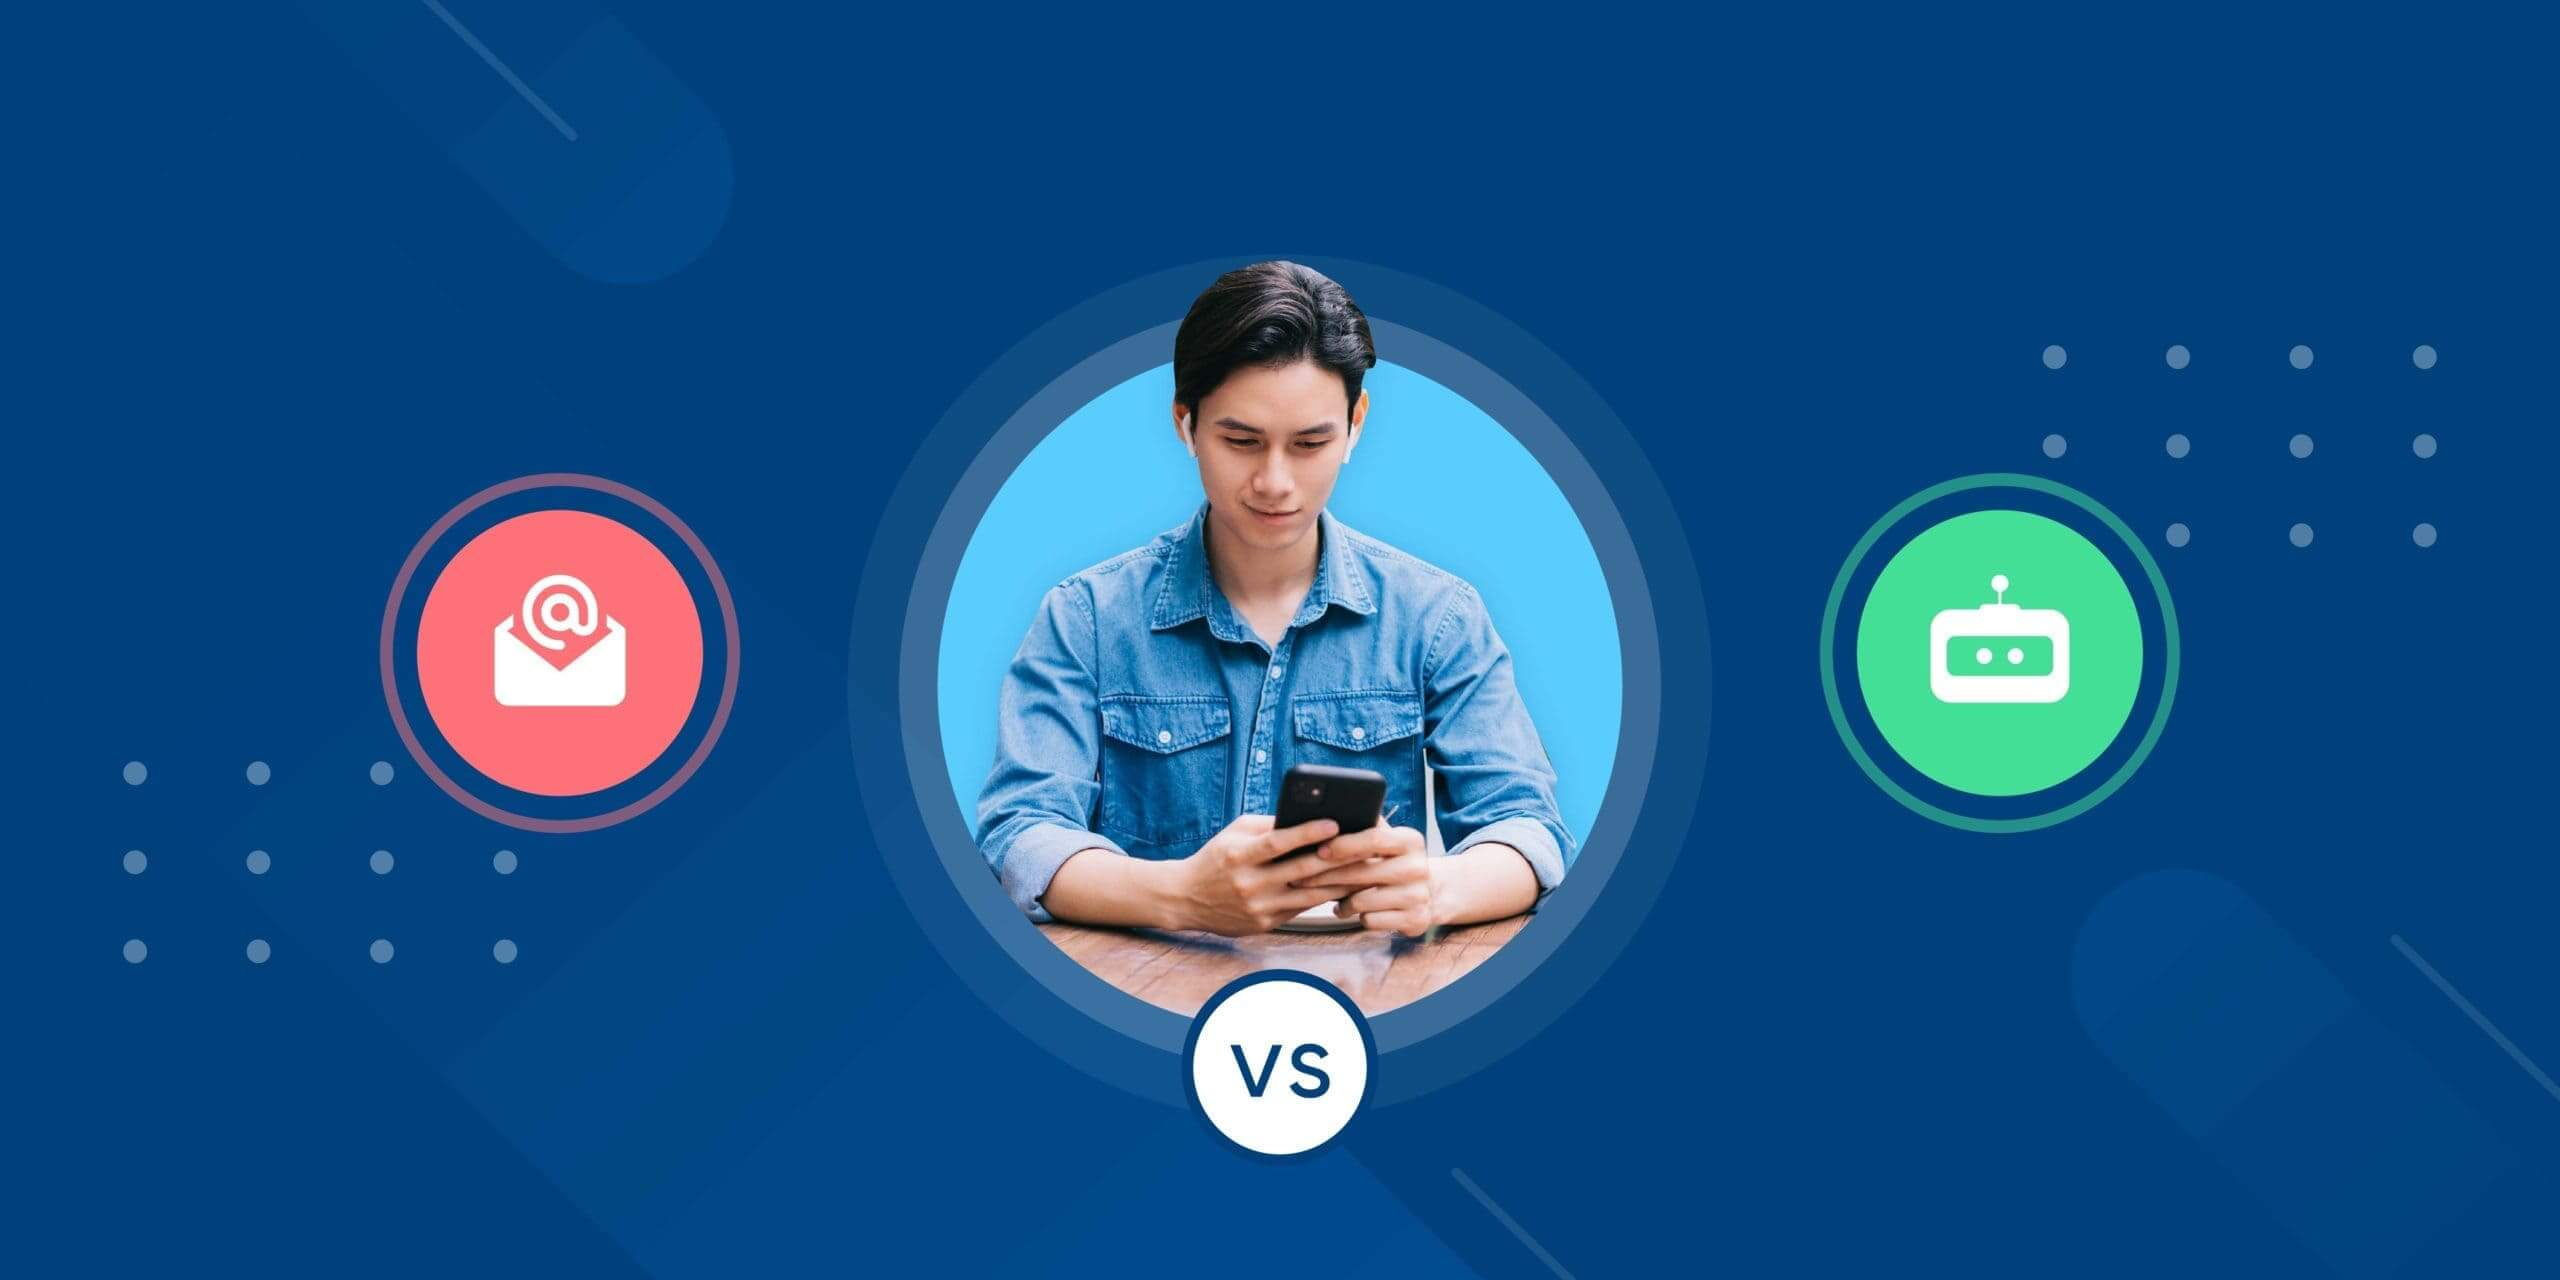 key differences between email and conversational AI